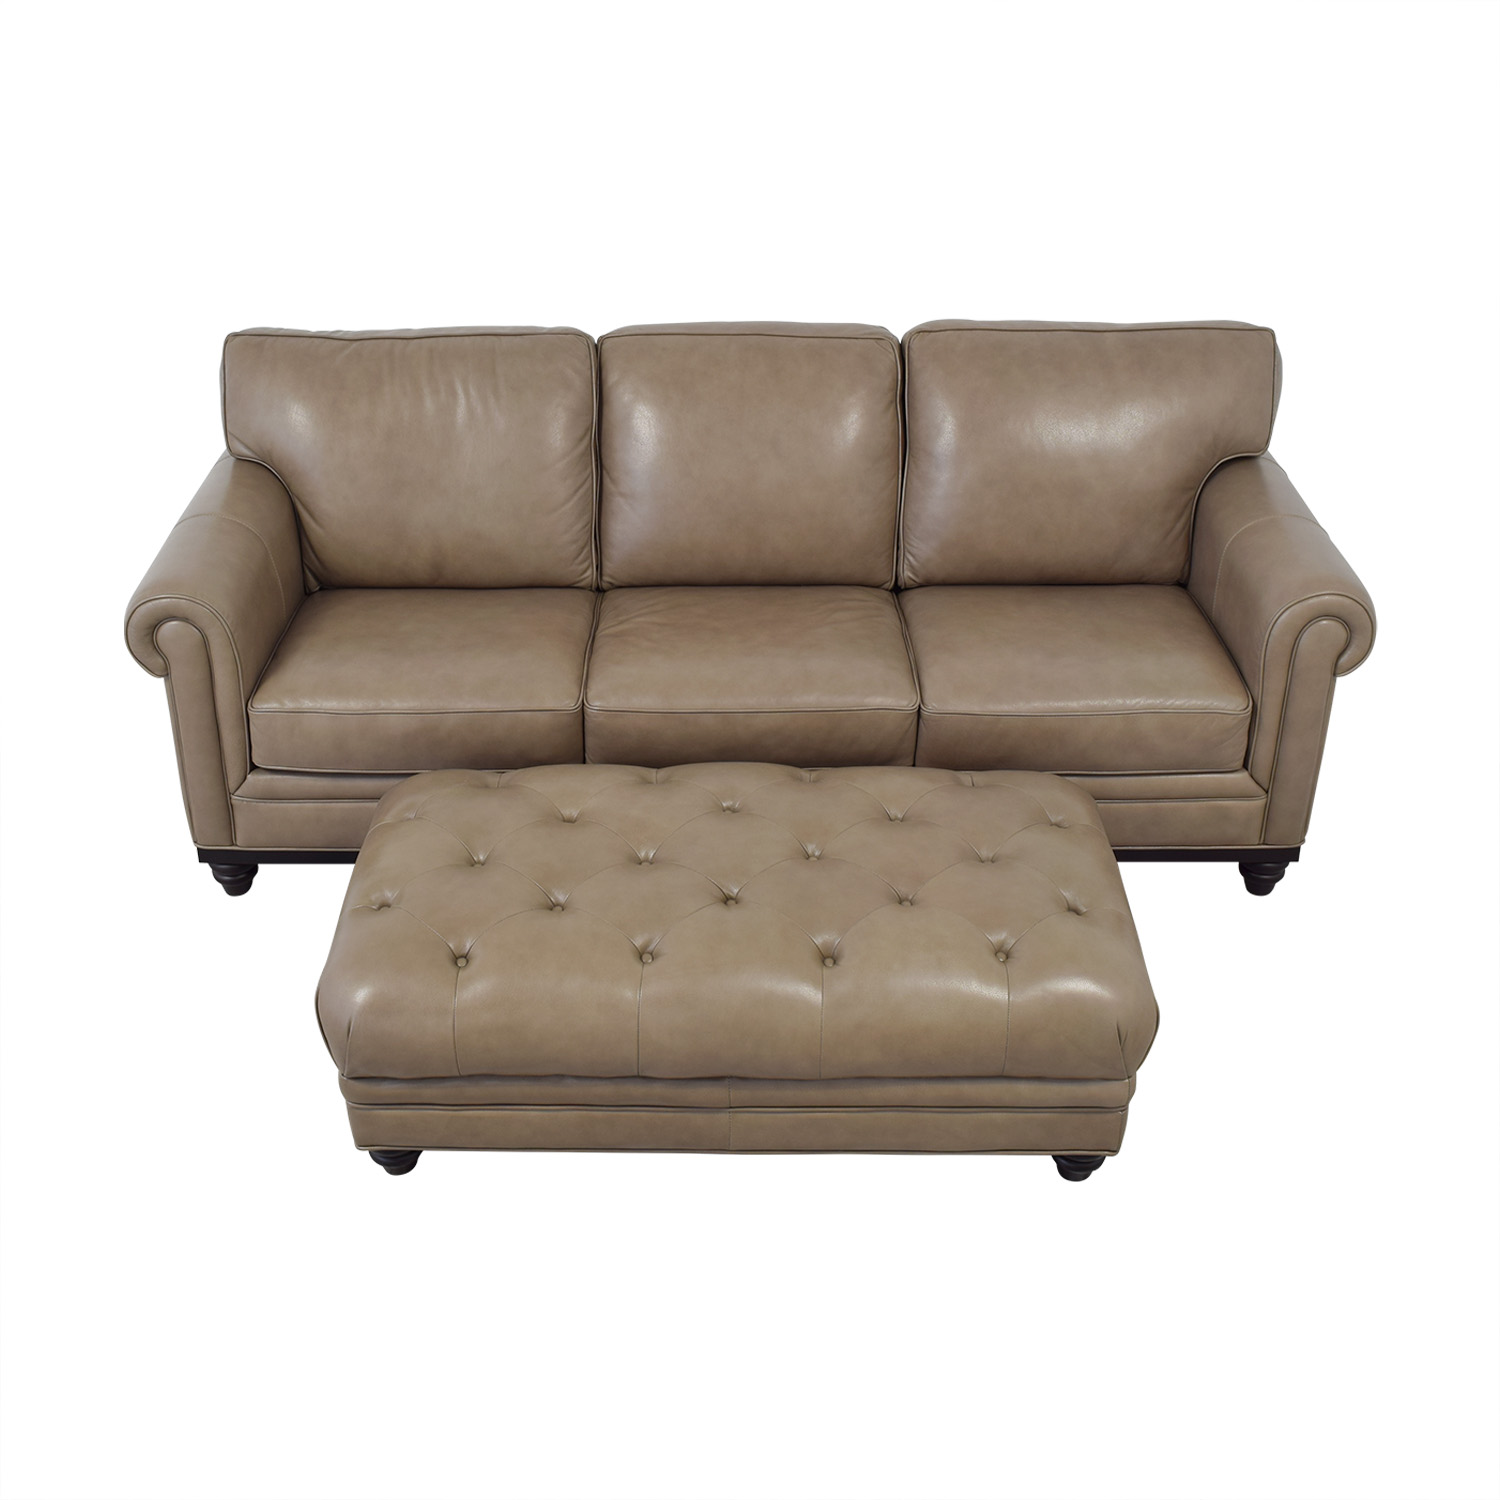 79 Off Macy S Macy S By Martha Stewart Braydyn Sofa And